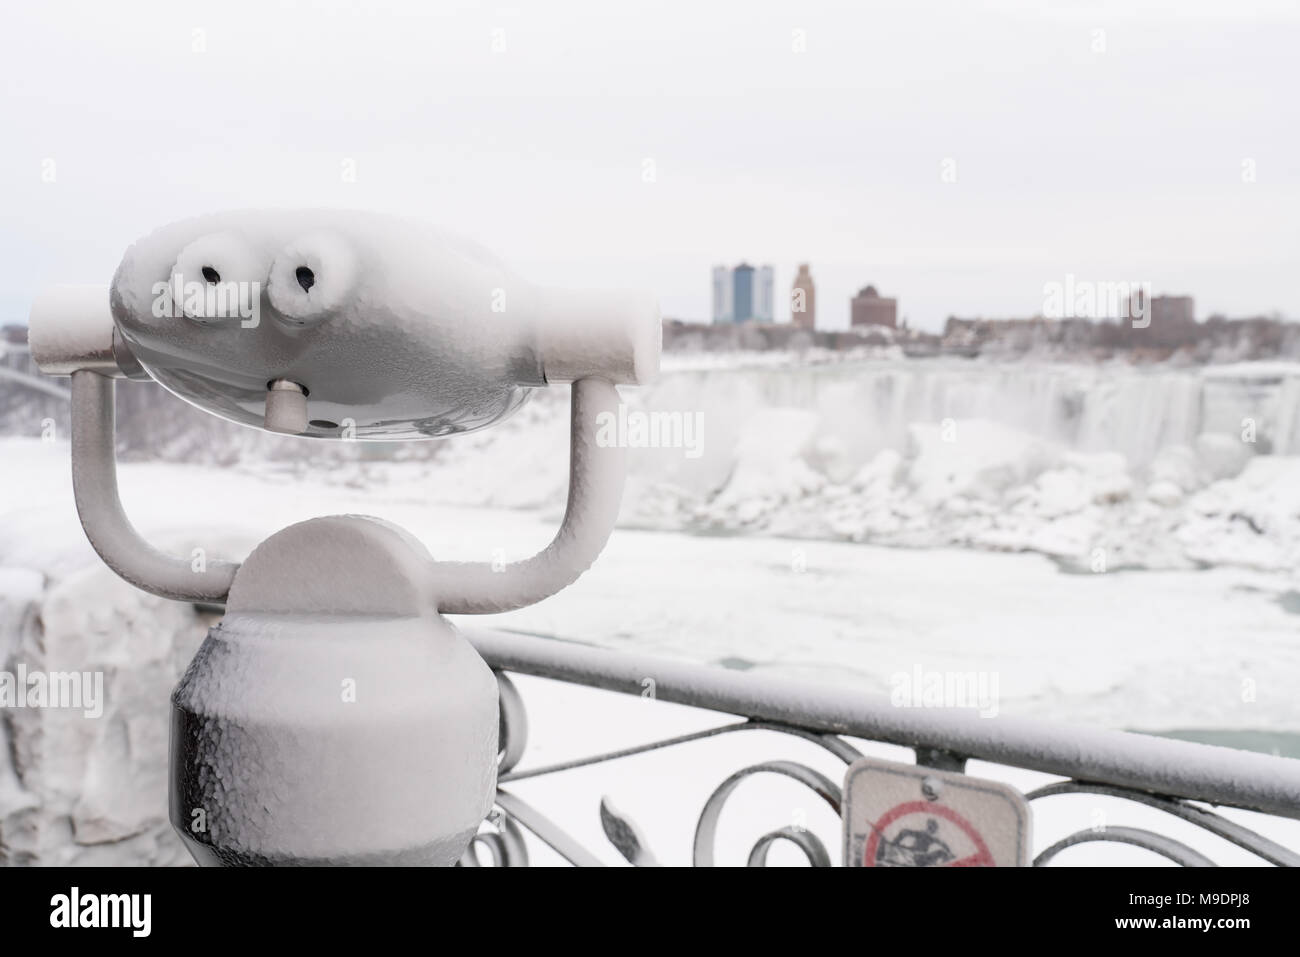 ice-covered-binoculars-with-american-niagara-falls-in-background-M9DPJ8.jpg